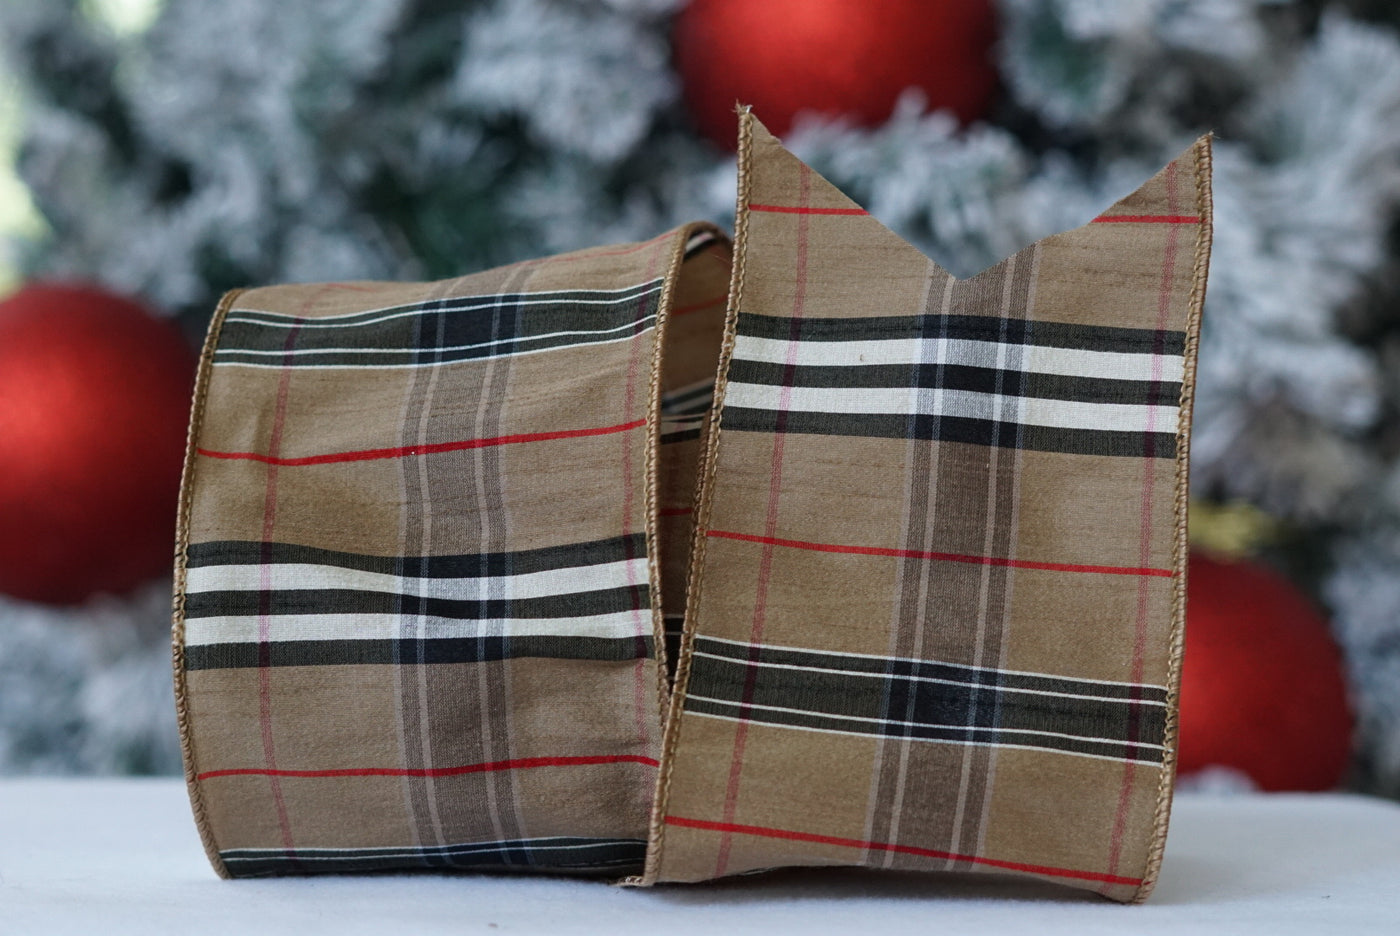 helloholidays,Tan Tartan Plaid Ribbon,Farisilk,Ribbon